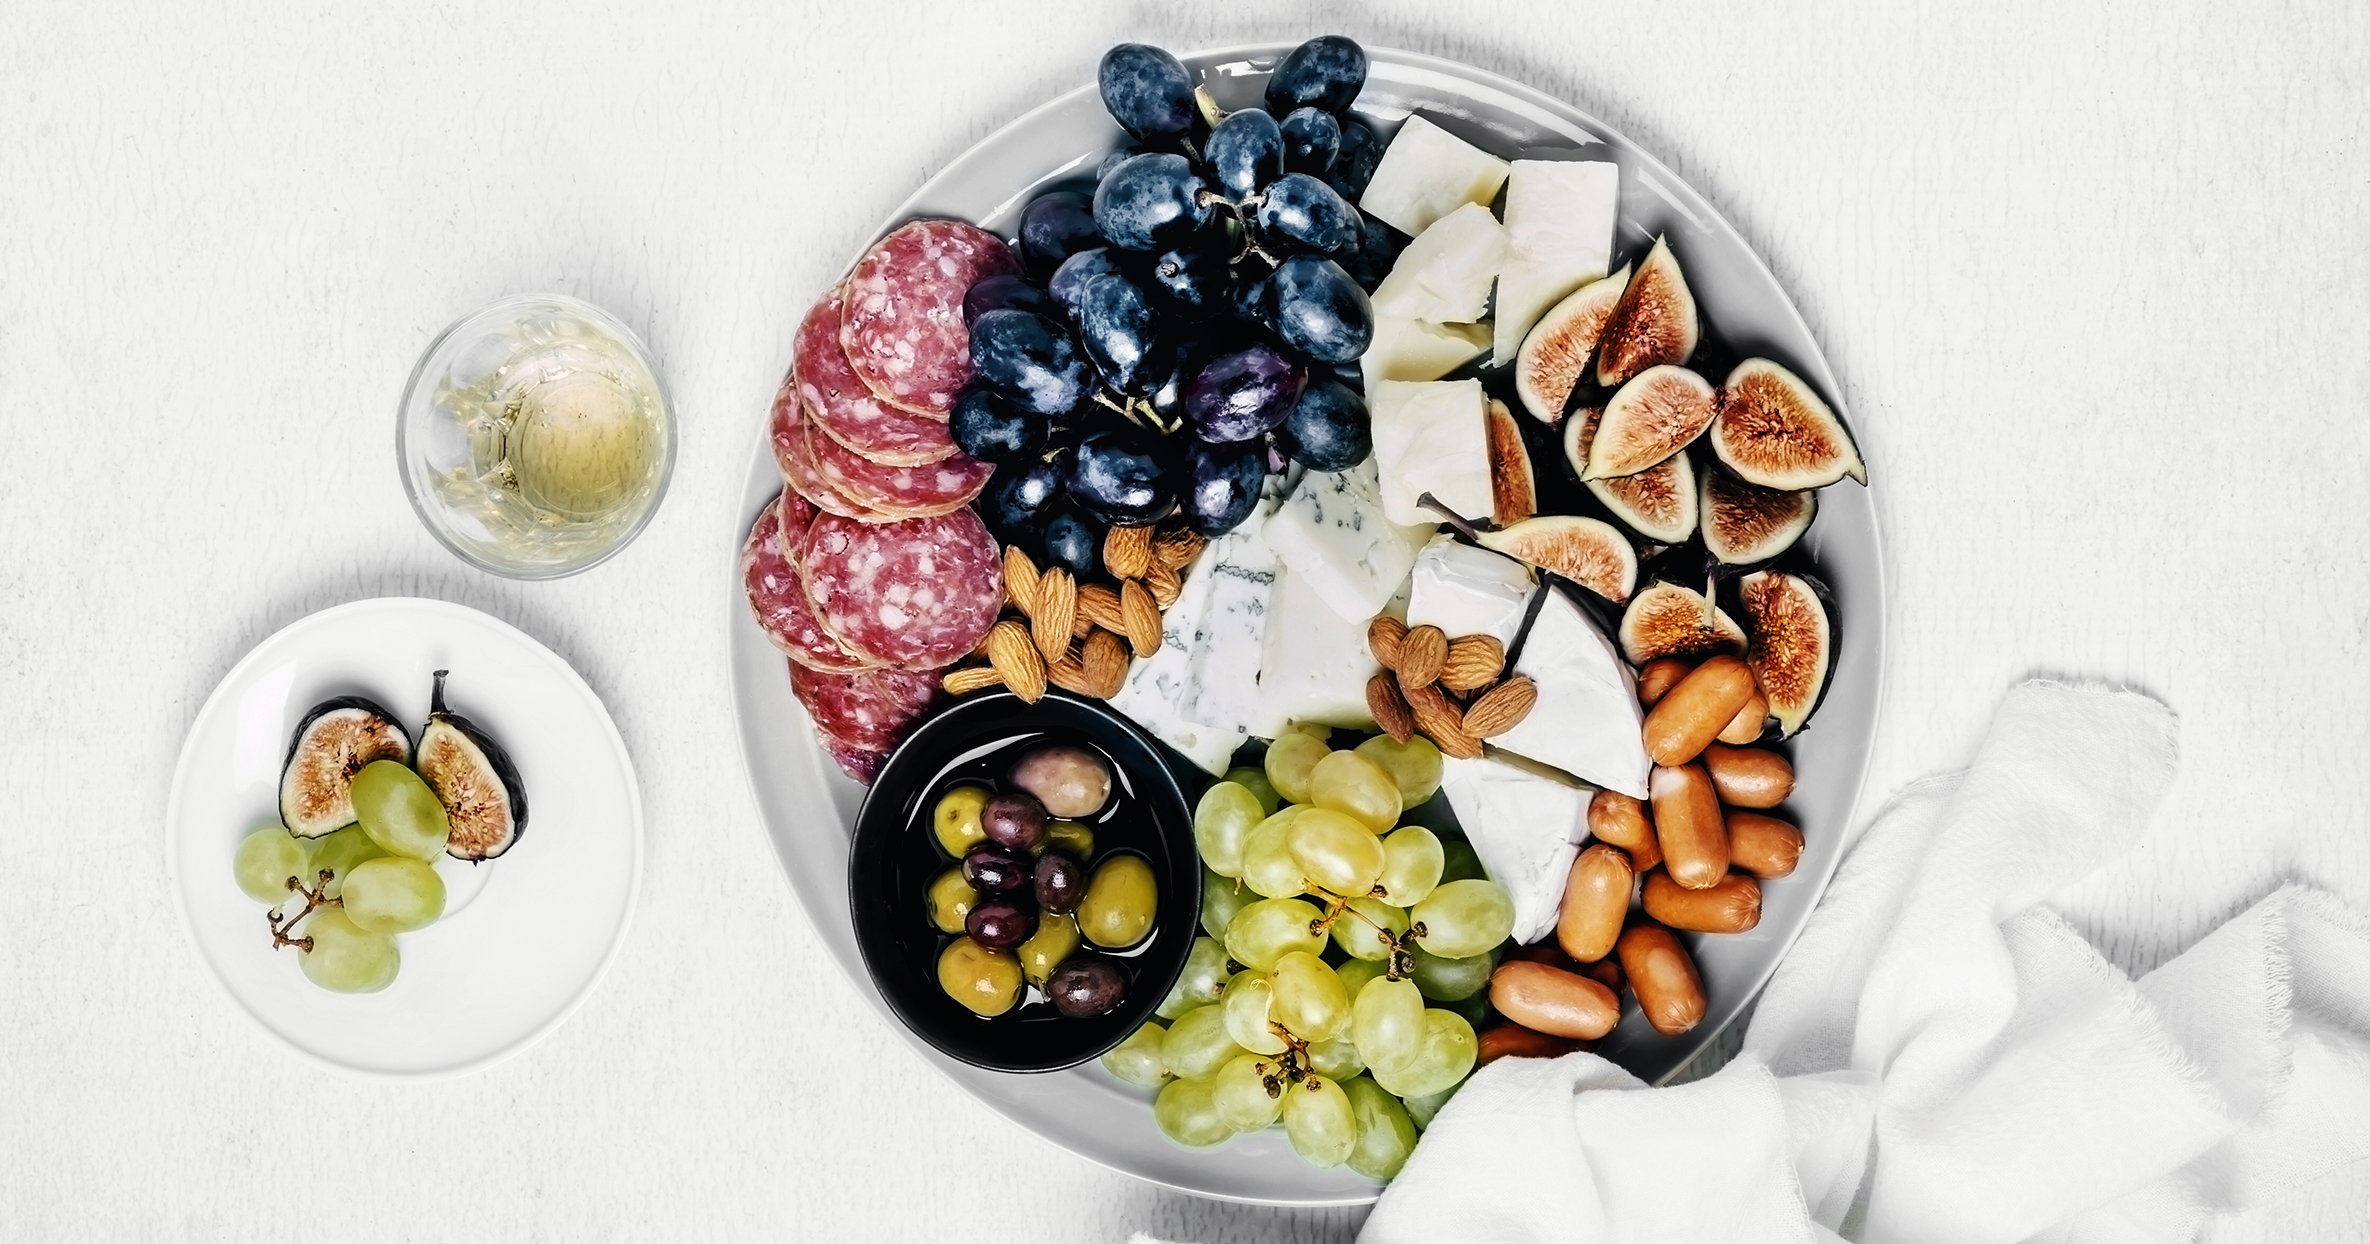 Healthy Party Snacks to Bring to Your Next Get-Together